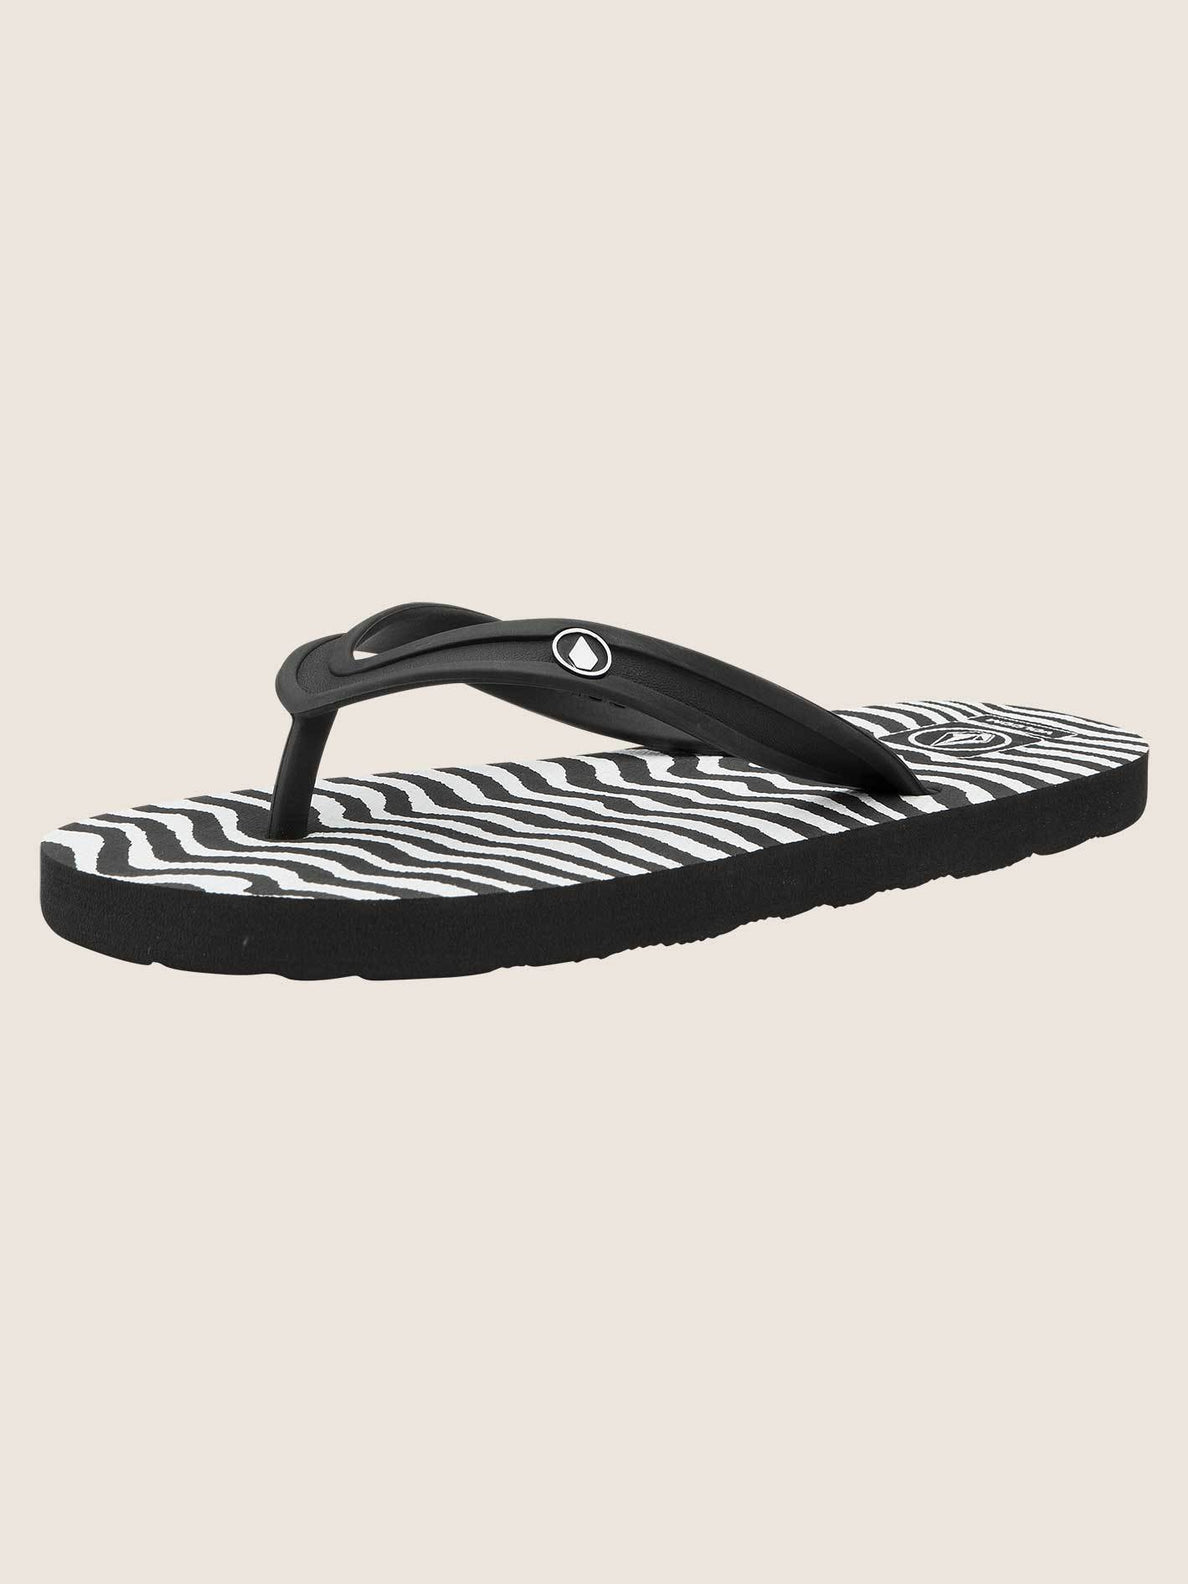 Big Boys Rocker 2 Sandals In Dark Wave, Back View